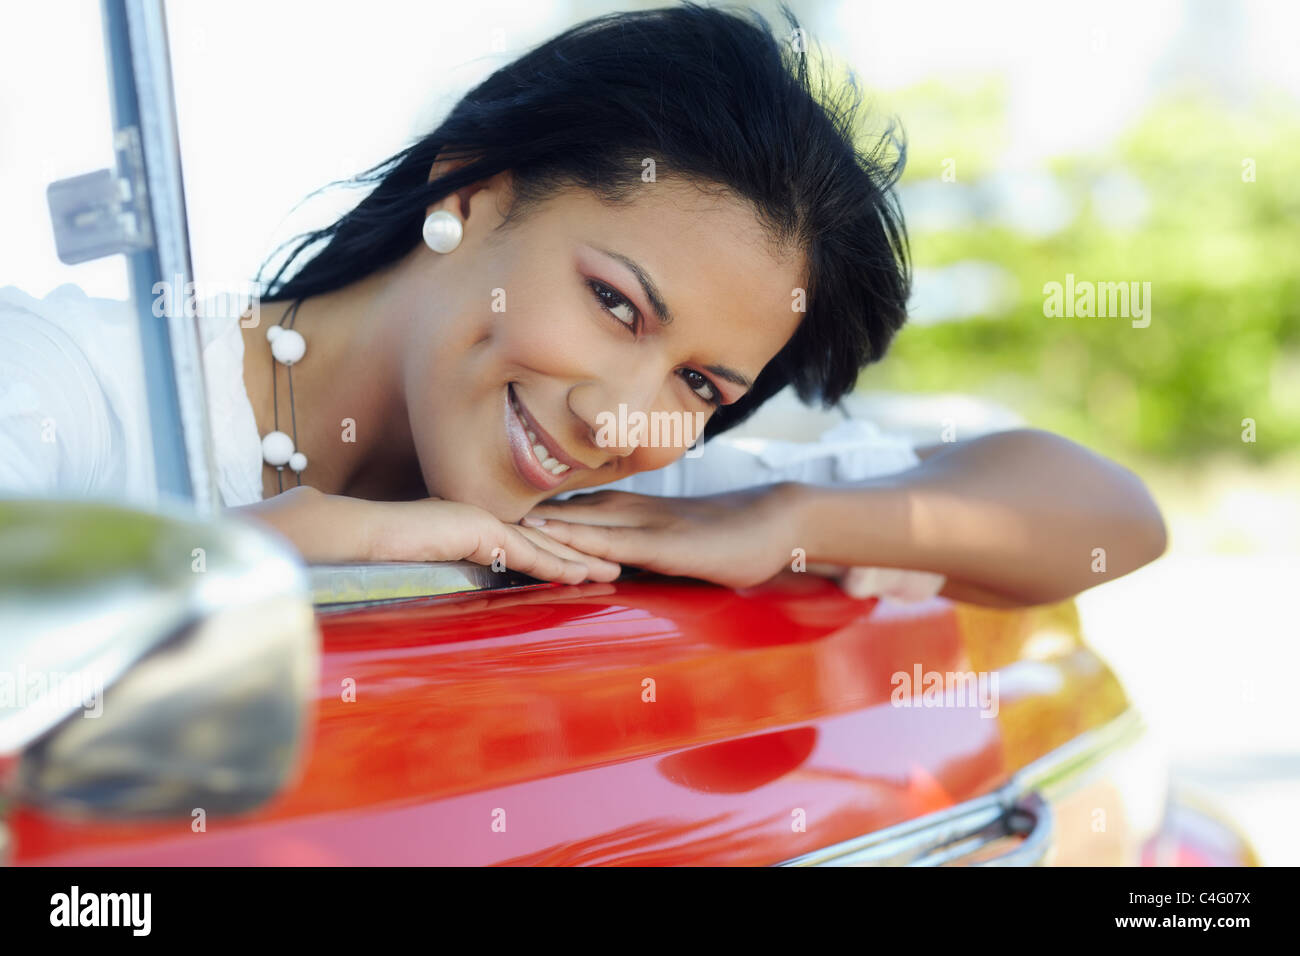 young adult brunette woman leaning on convertible red car and looking at camera. Horizontal shape, side view - Stock Image